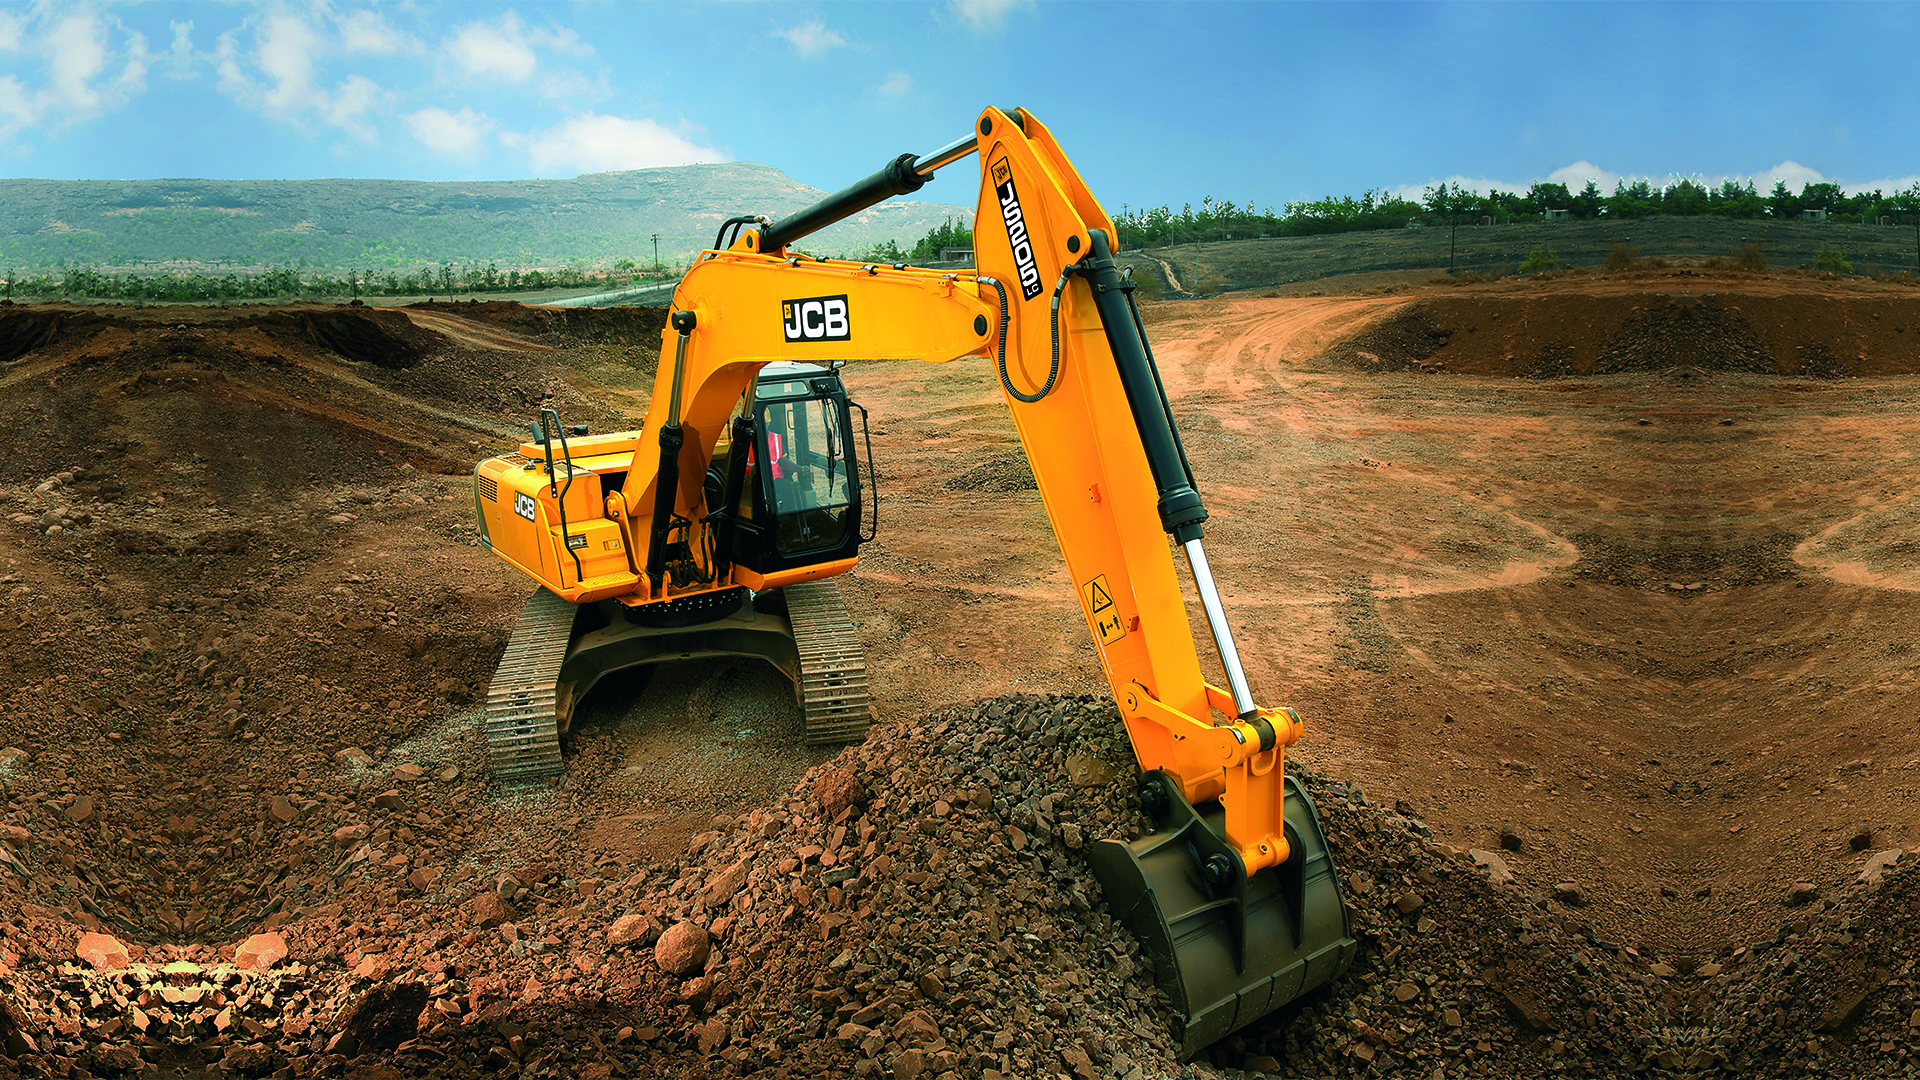 JCB JS205LC Tracked Excavator Wallpaper